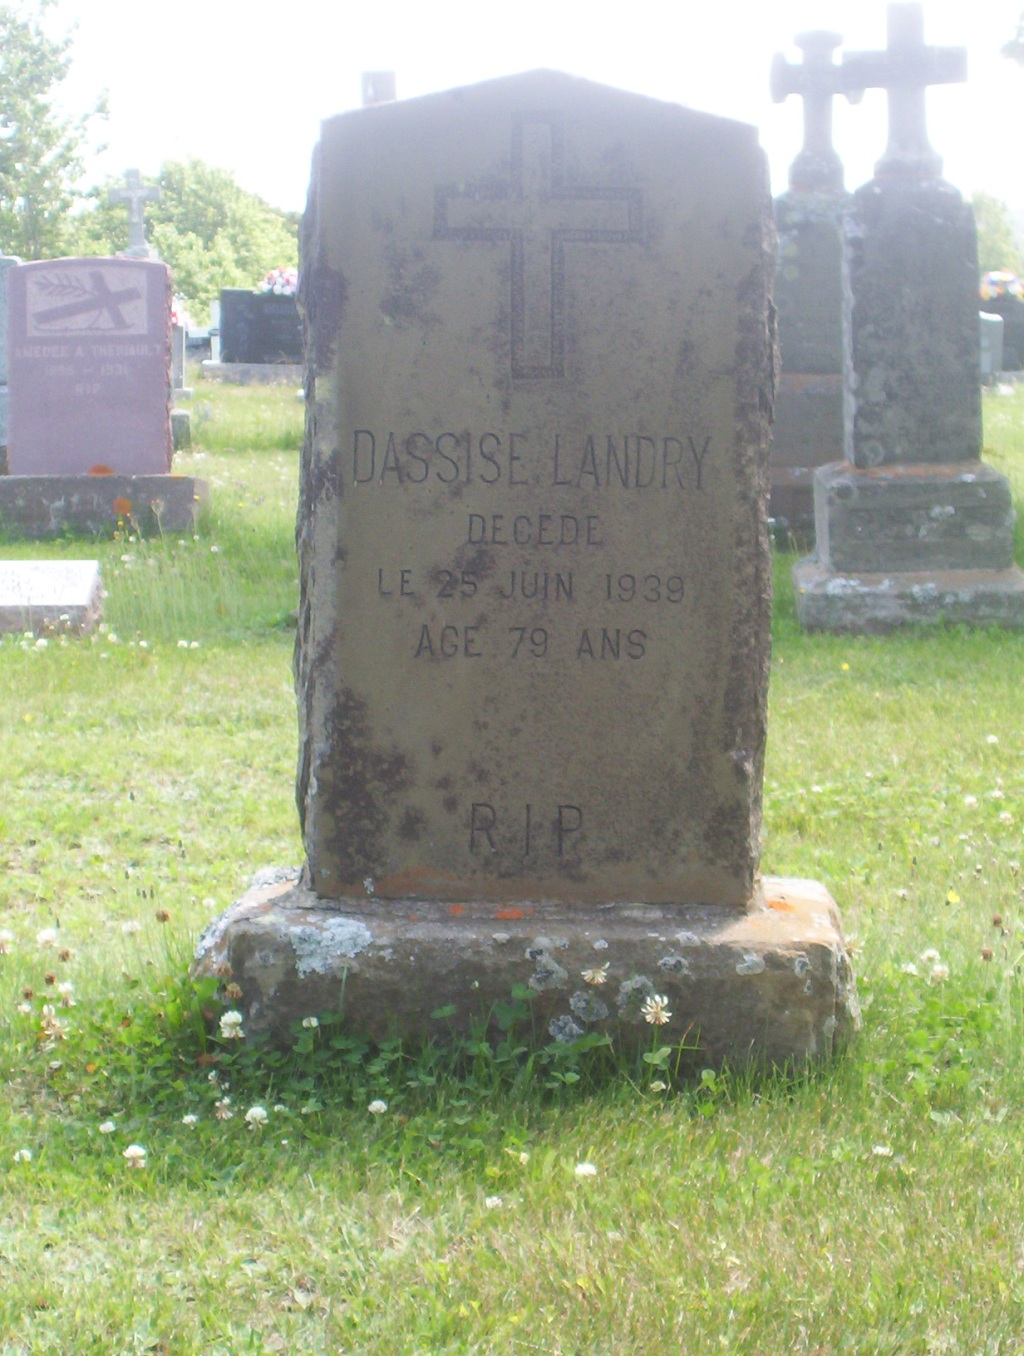 Paquetville Headstone: Landry Dassise 25 Jun 1939